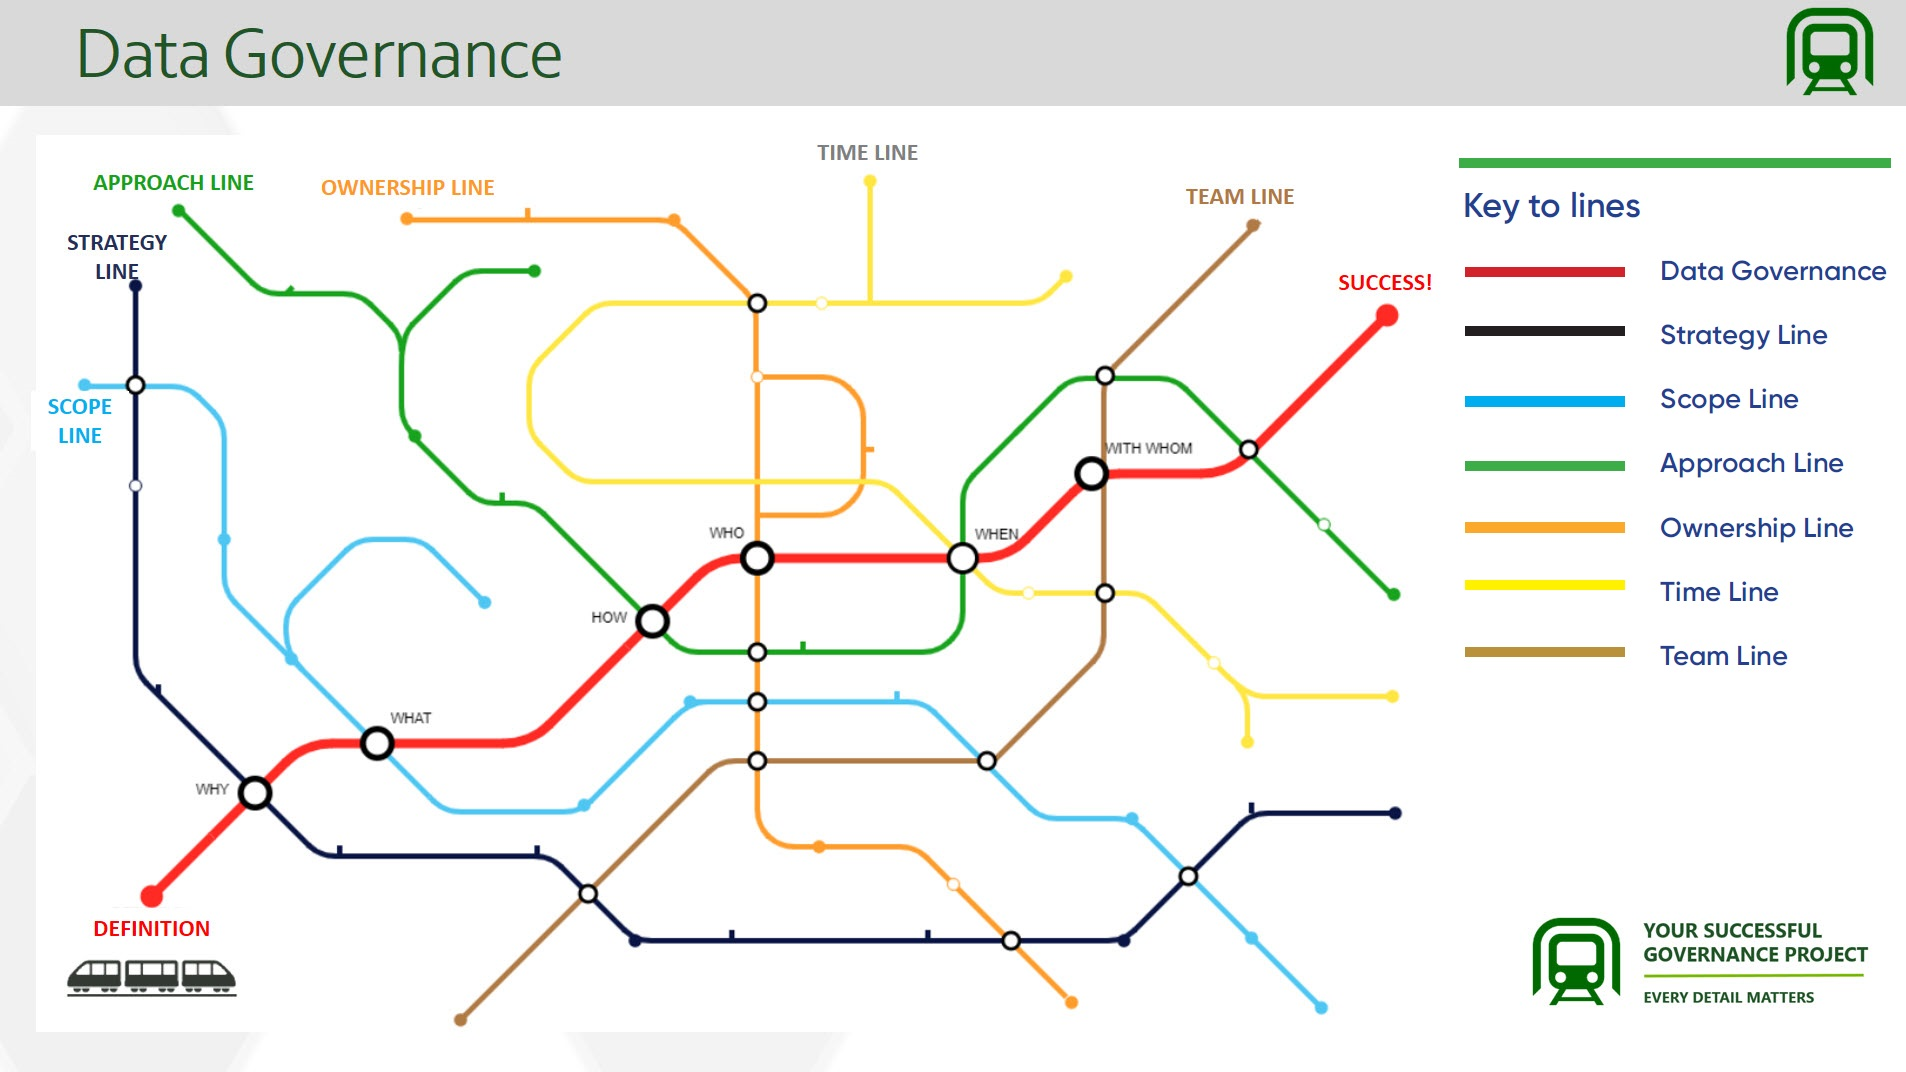 A Data Governance 'Tube map' Ieva uses to guide her team's project from definition to success. Created using www.beno.uk/metromapcreator